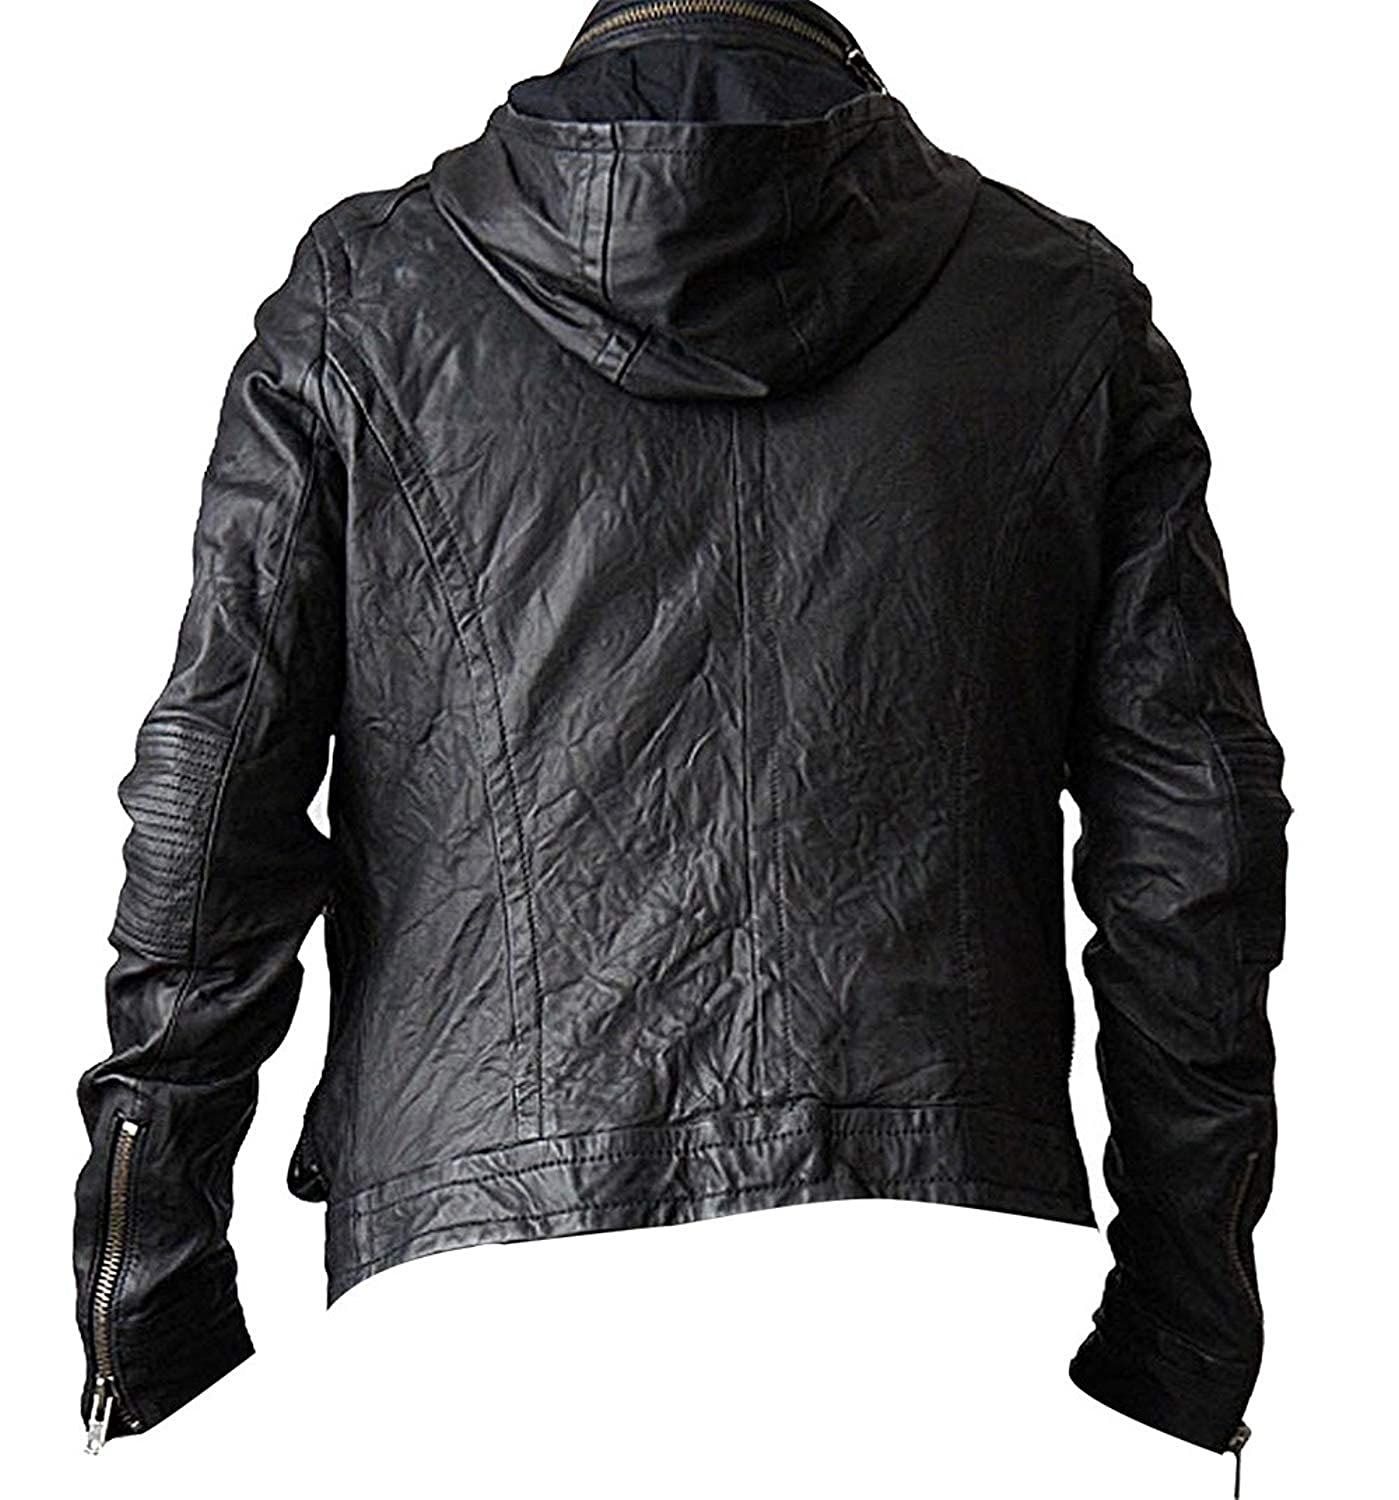 Mens MI 4 Ghost Cruise Biker Protocol Hooded Leather Jacket ...